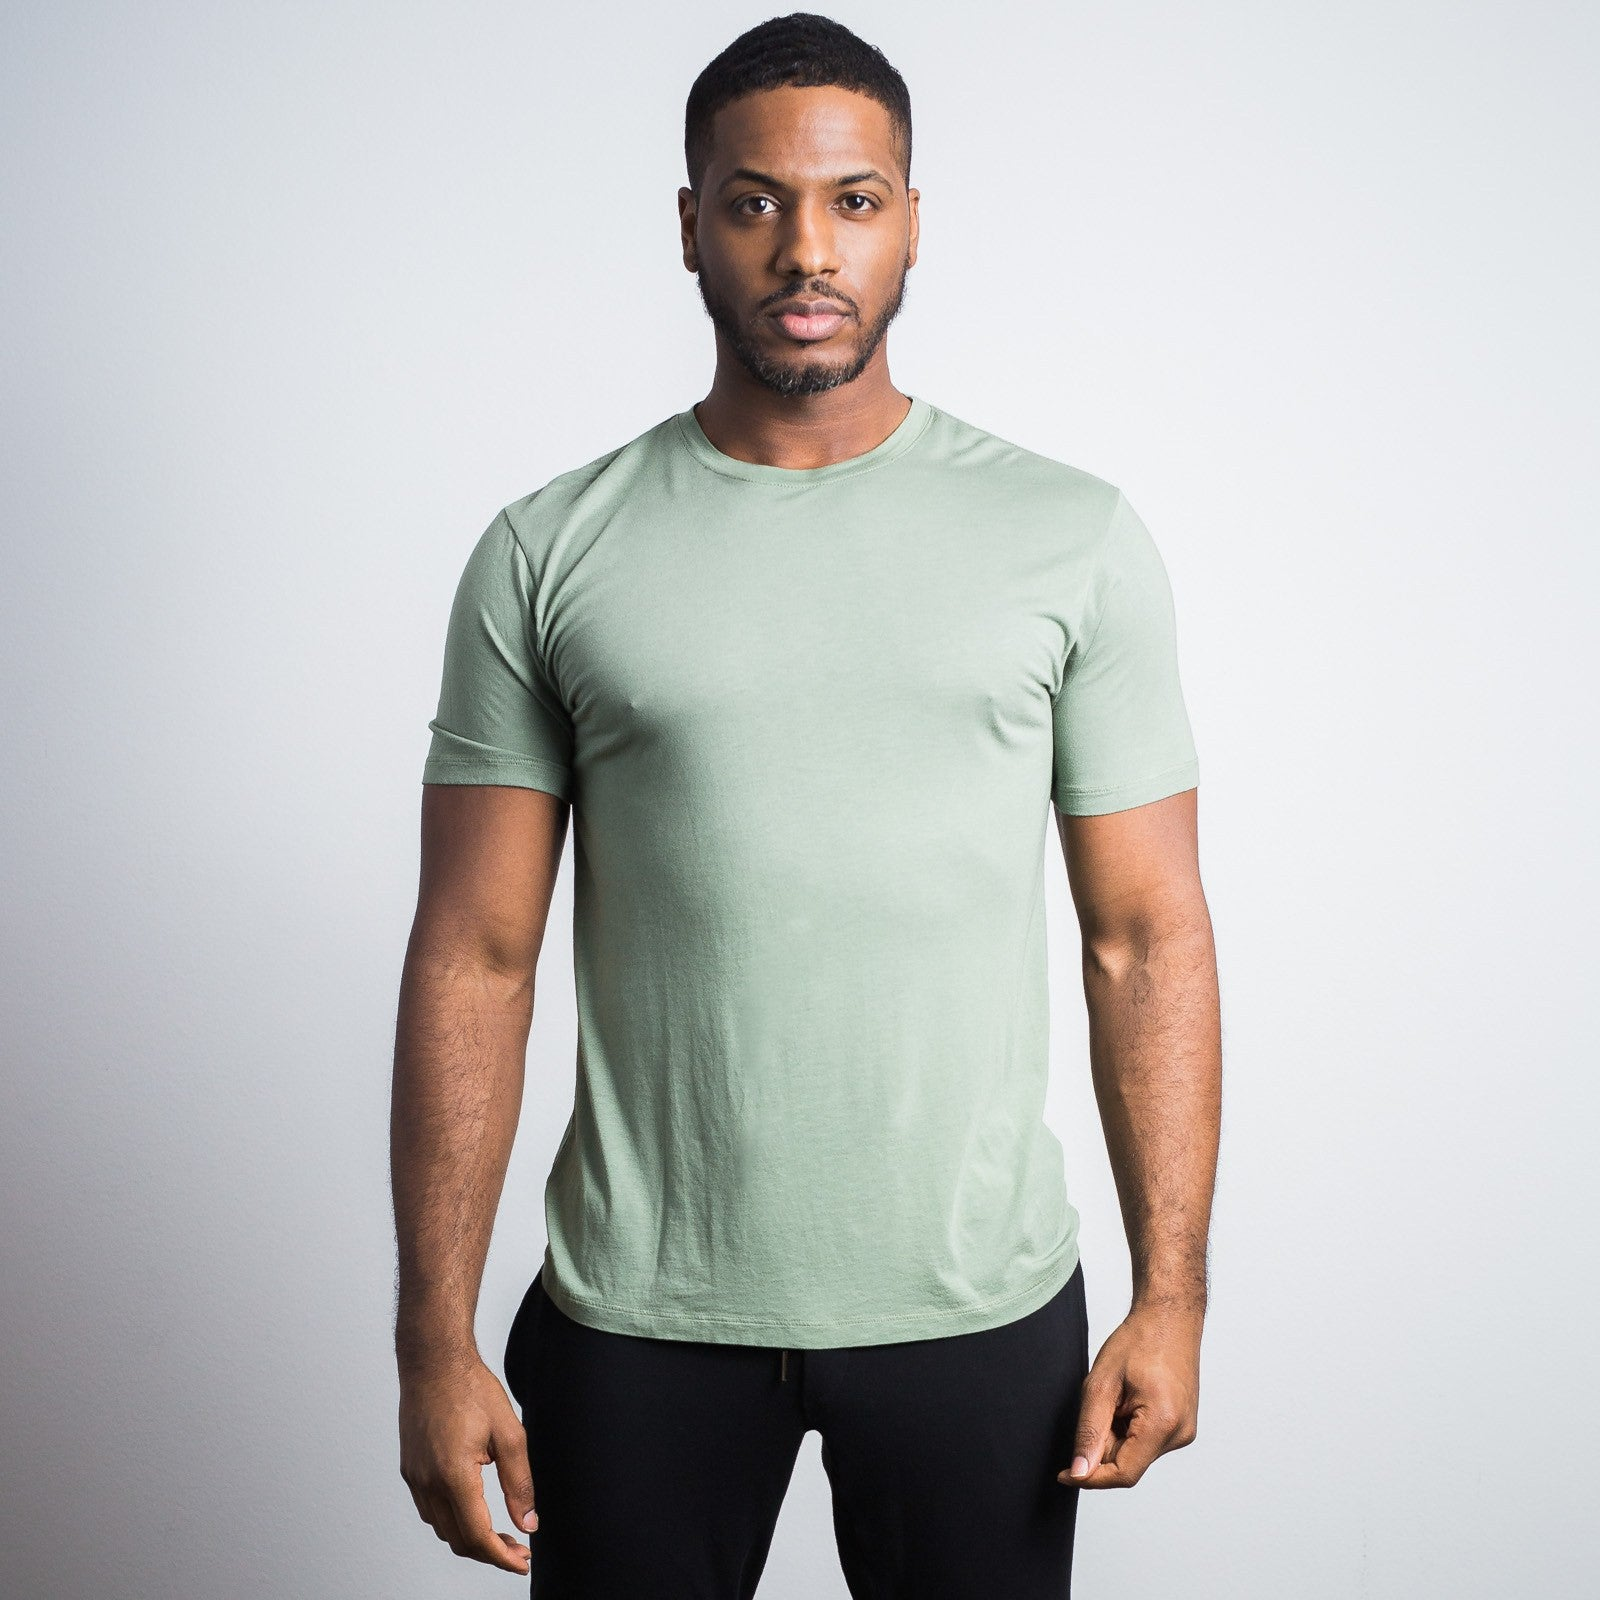 Sage Green Bamboo Cotton Crew - Sweat Tailor